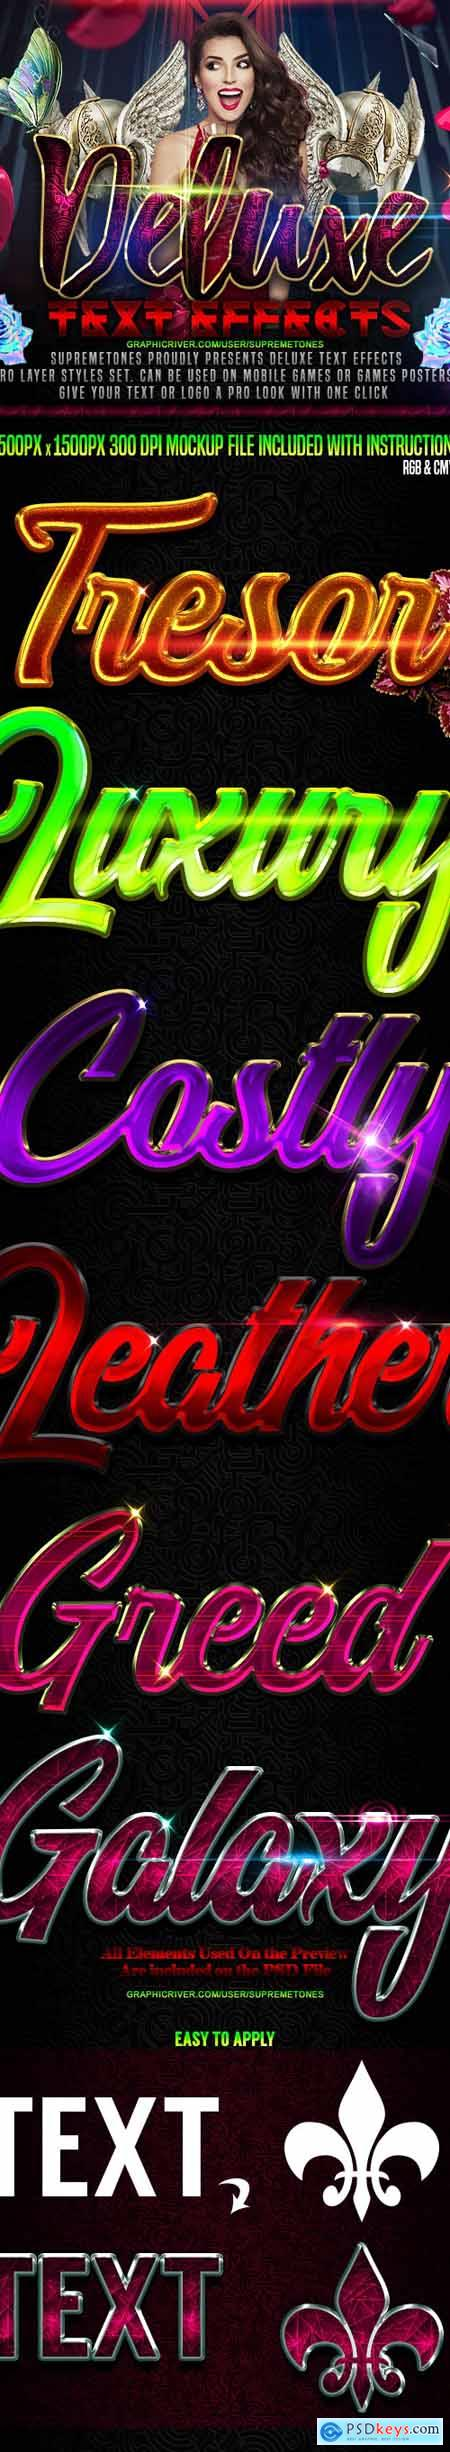 Deluxe Photoshop Text Effects 24716570